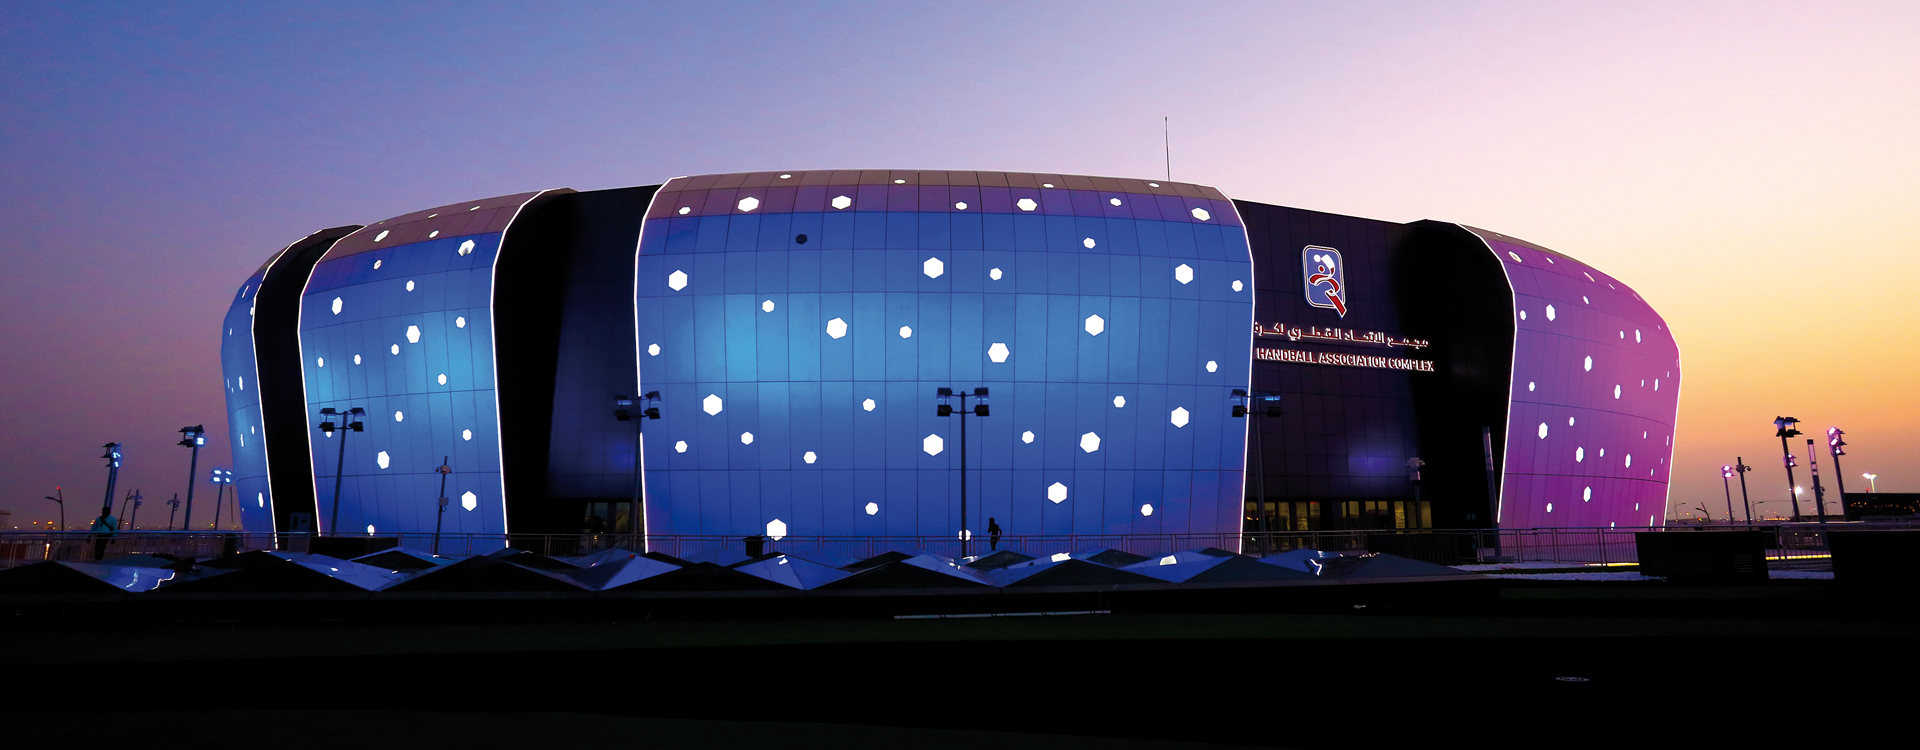 QATAR HANDBALL ASSOCIATION COMPLEX